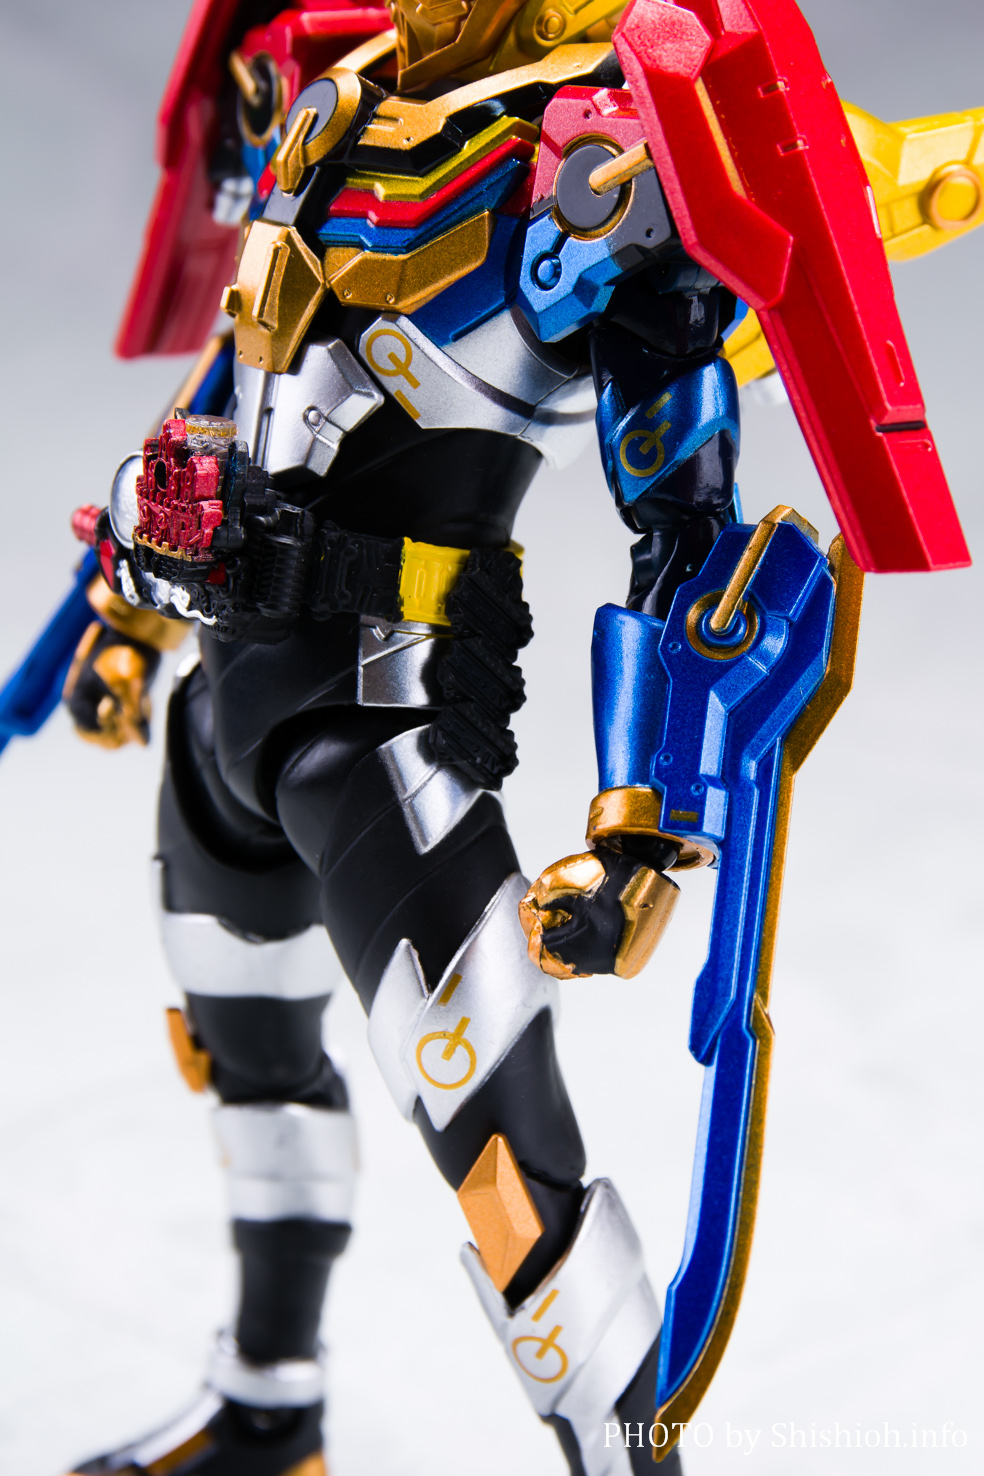 S.H.Figuarts 仮面ライダーグリスパーフェクトキングダム